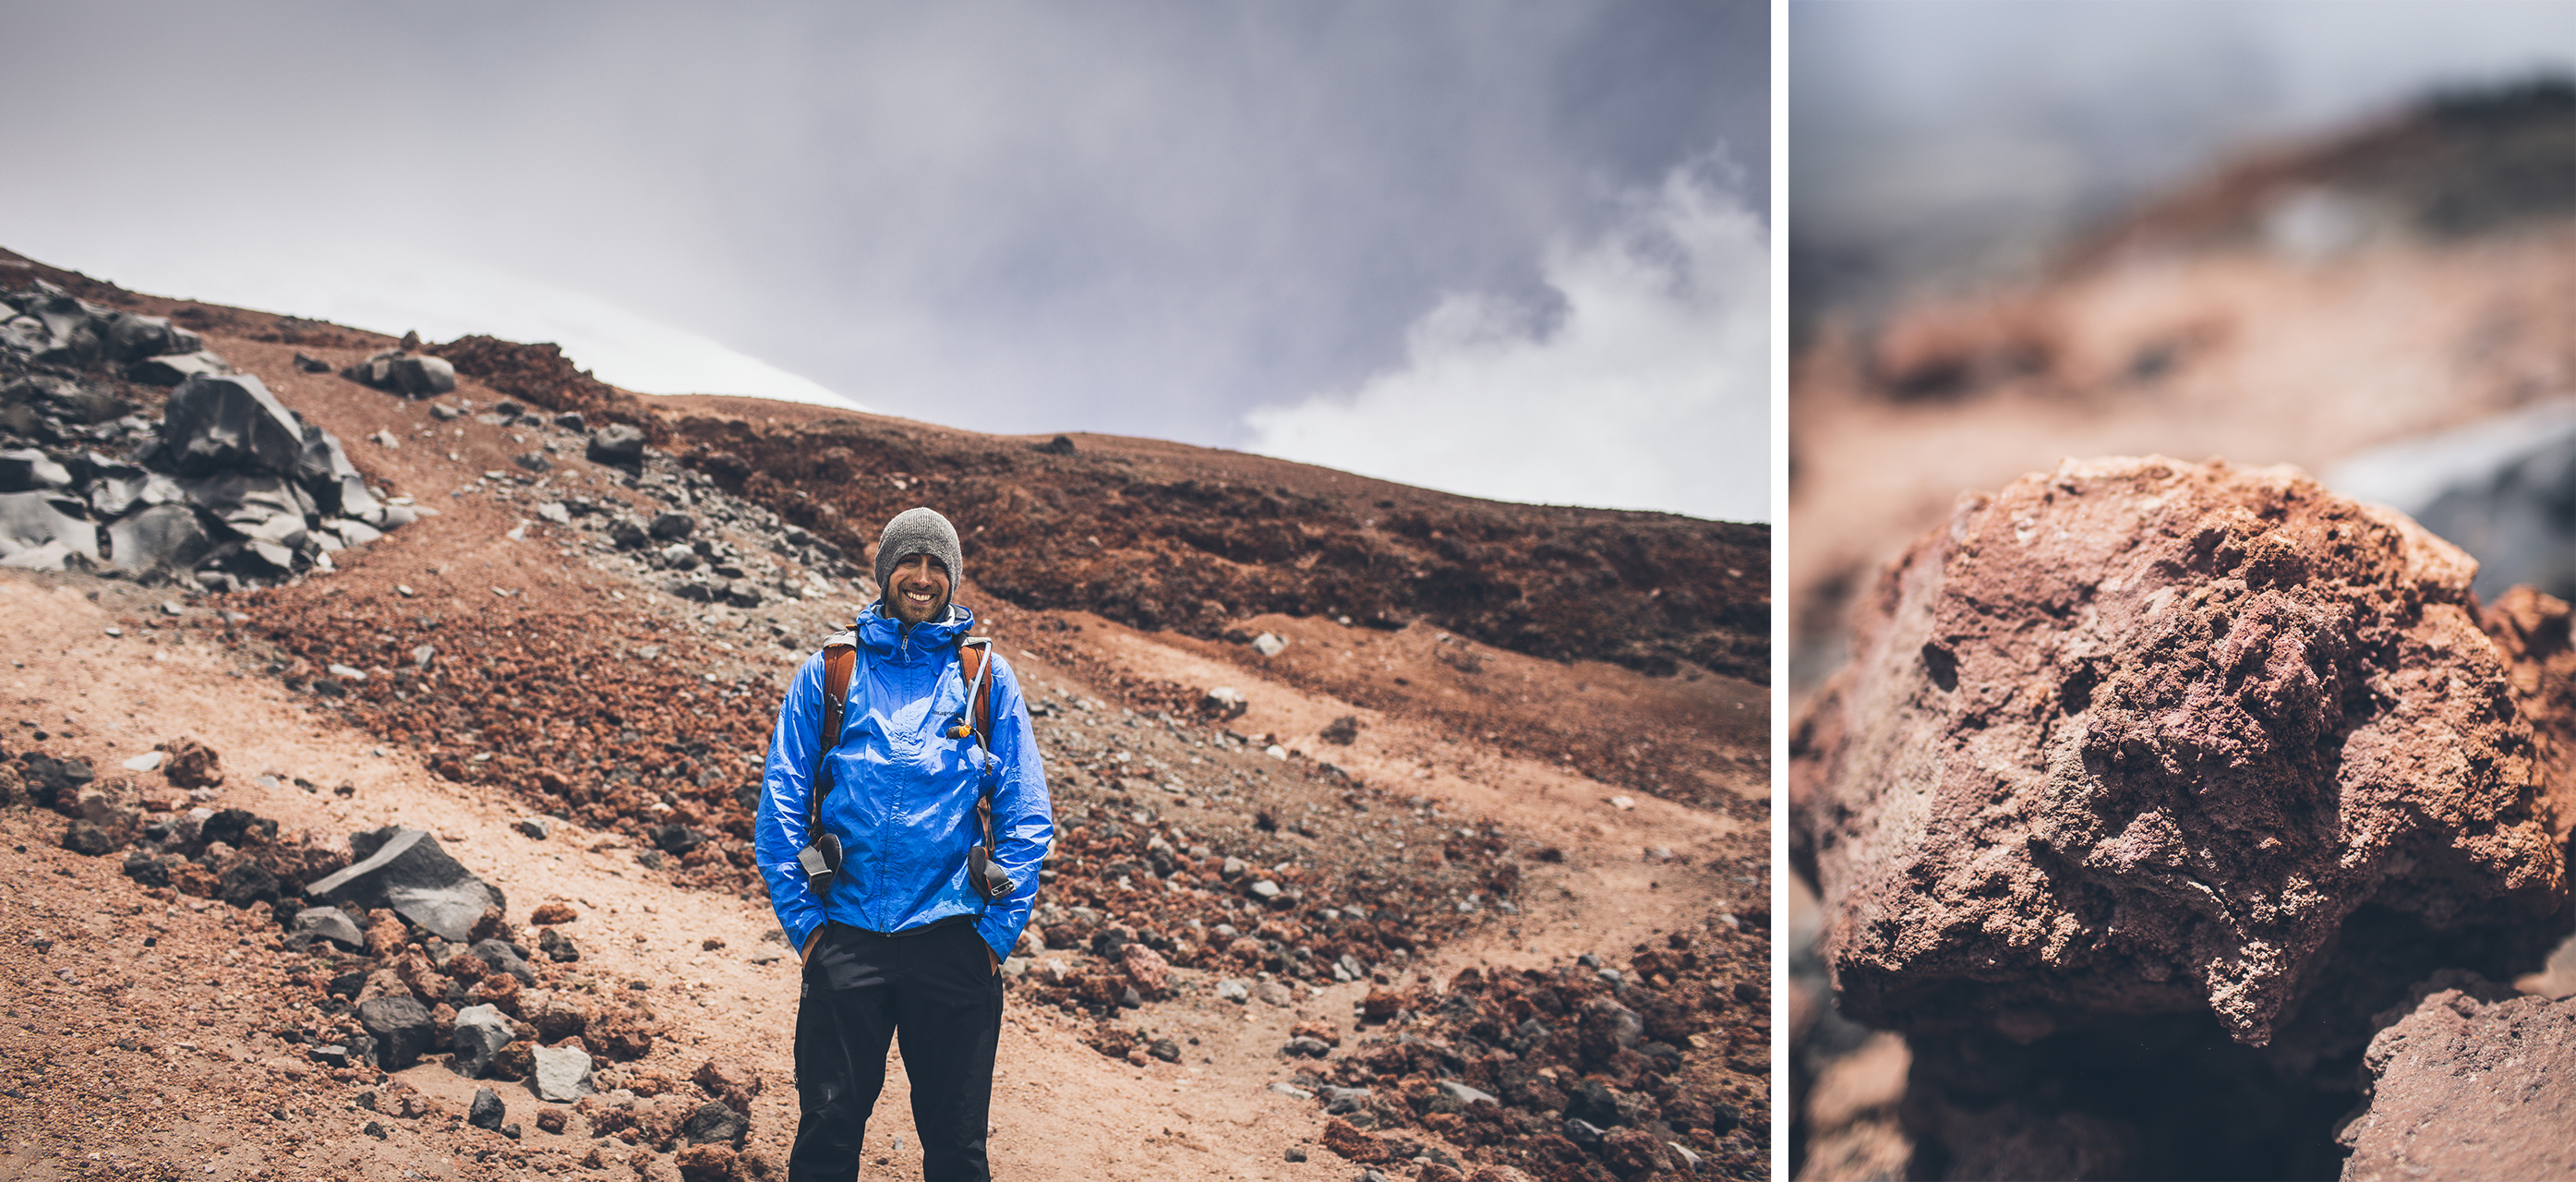 desktoglory_cotopaxi-31 copy